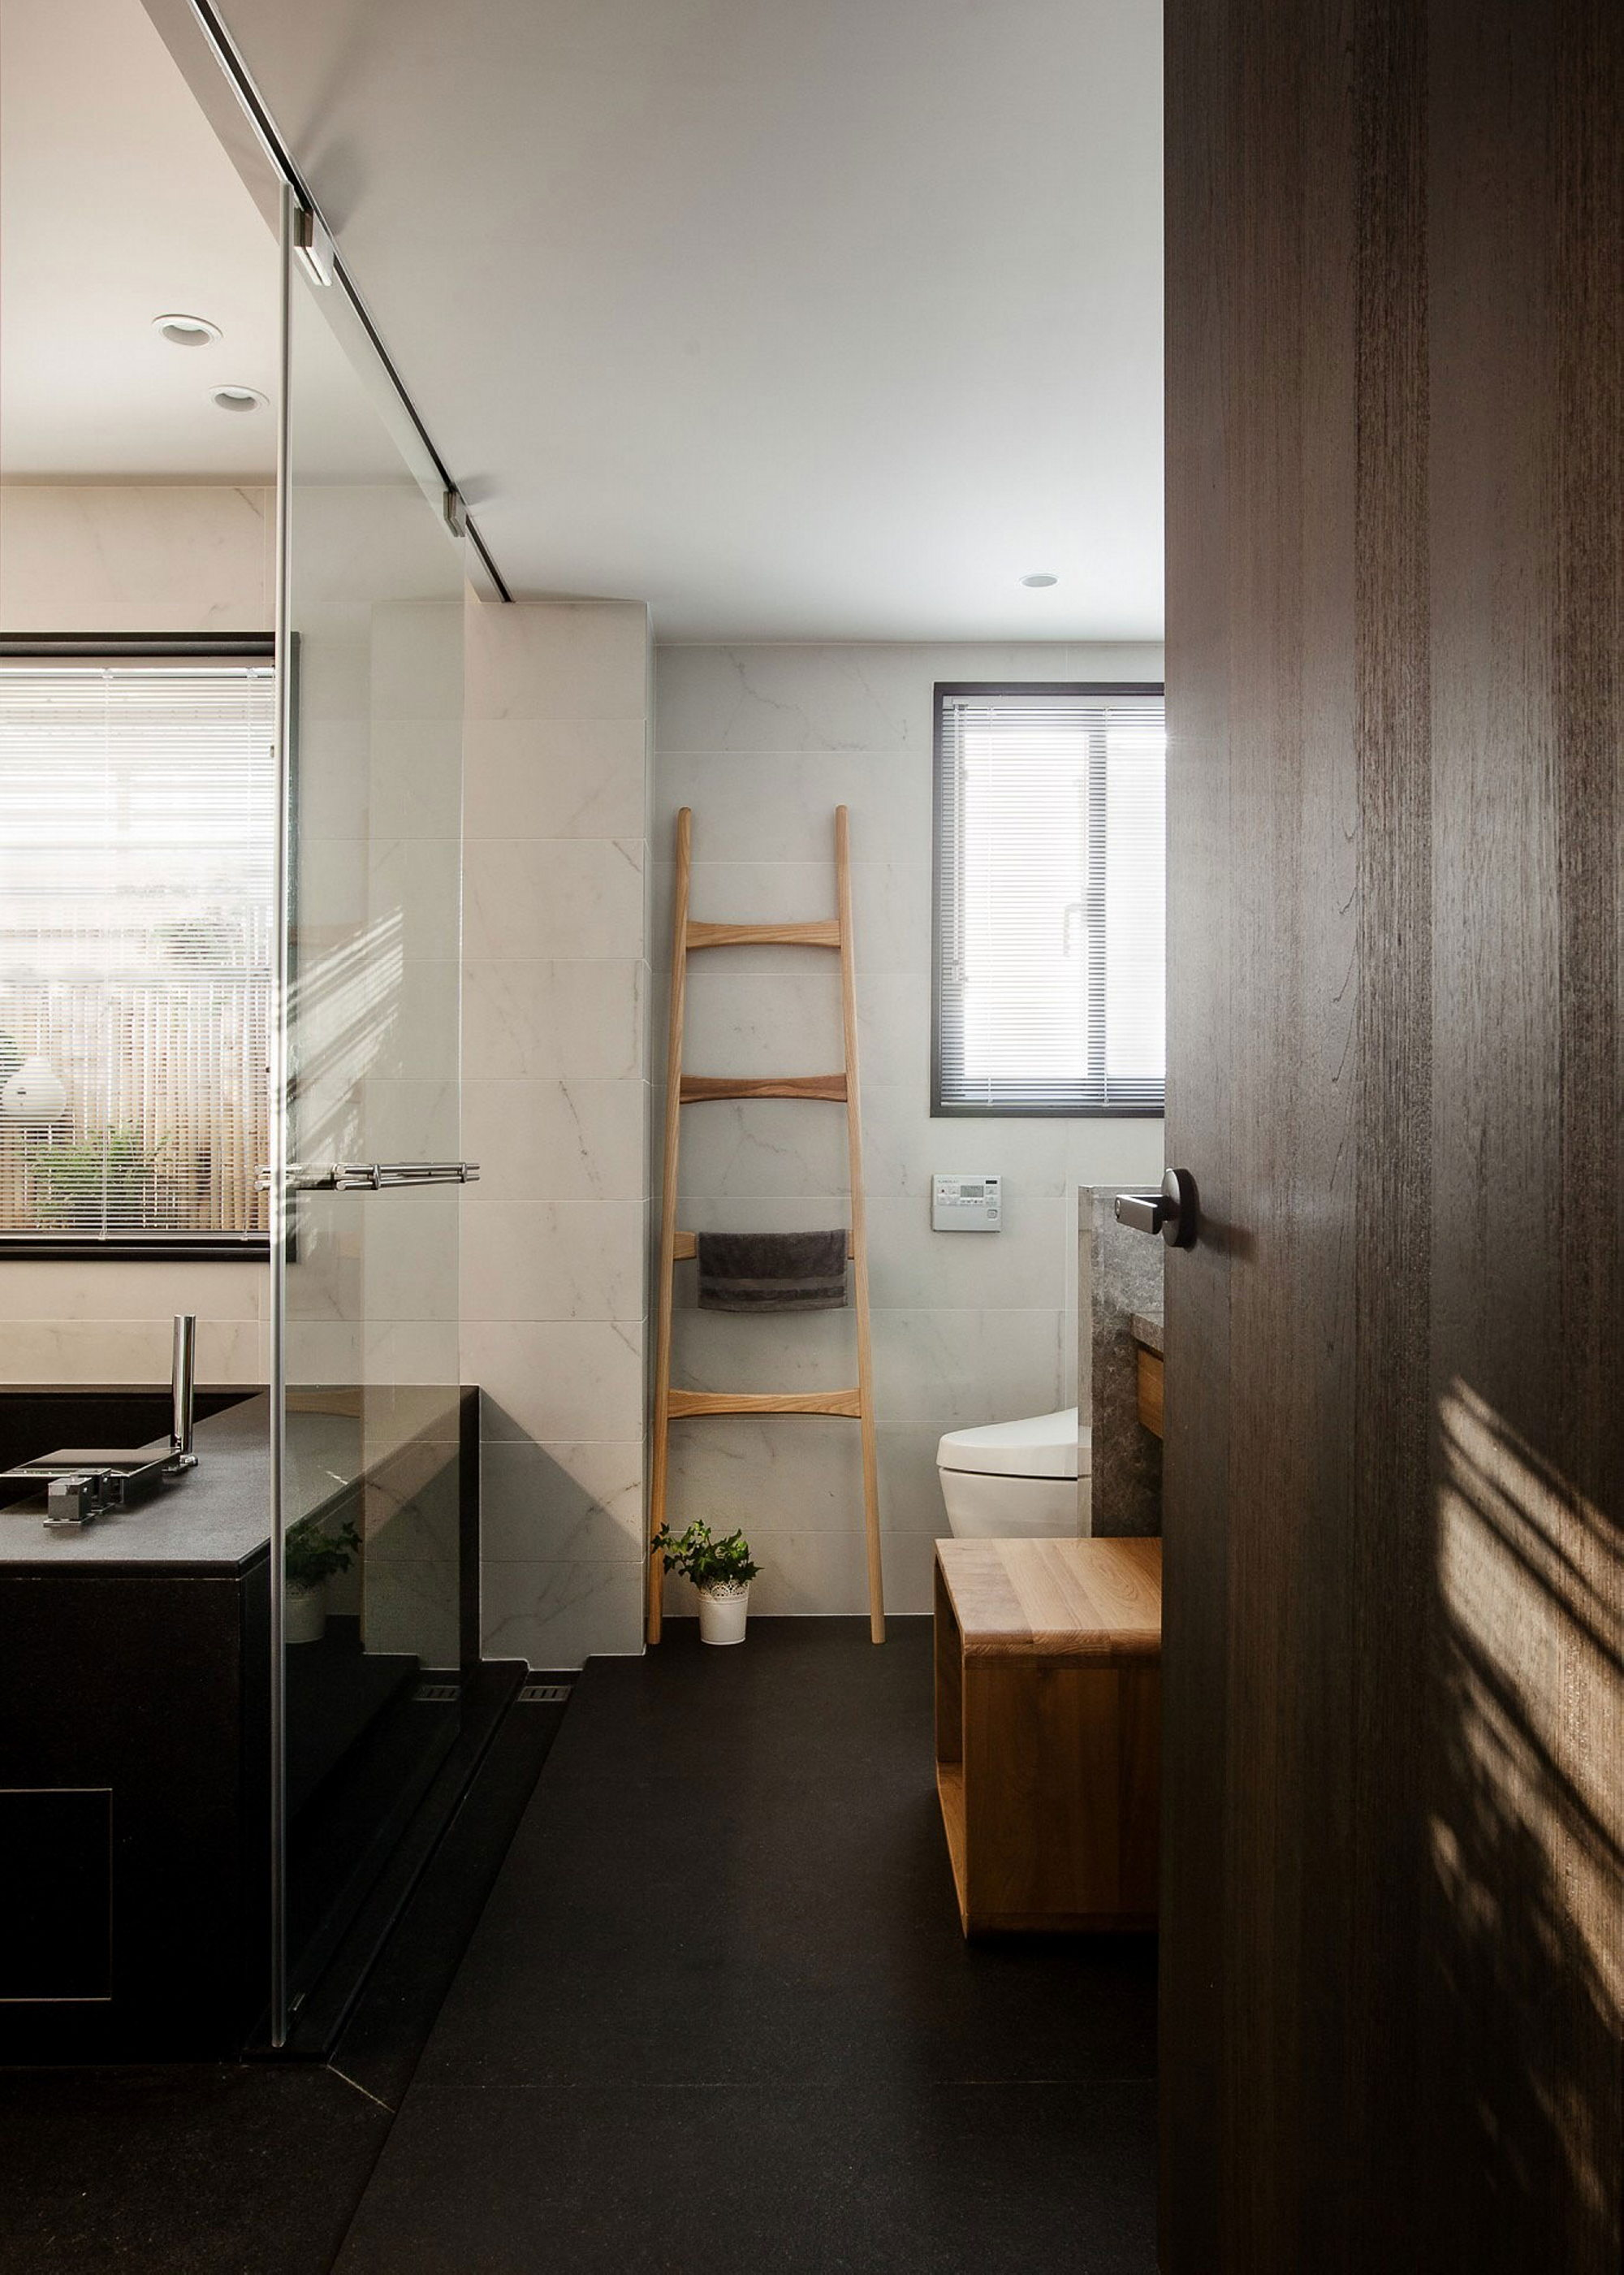 The wang s house apartment in taiwan upon the project of the pm design studio - Vintage badkamer ...